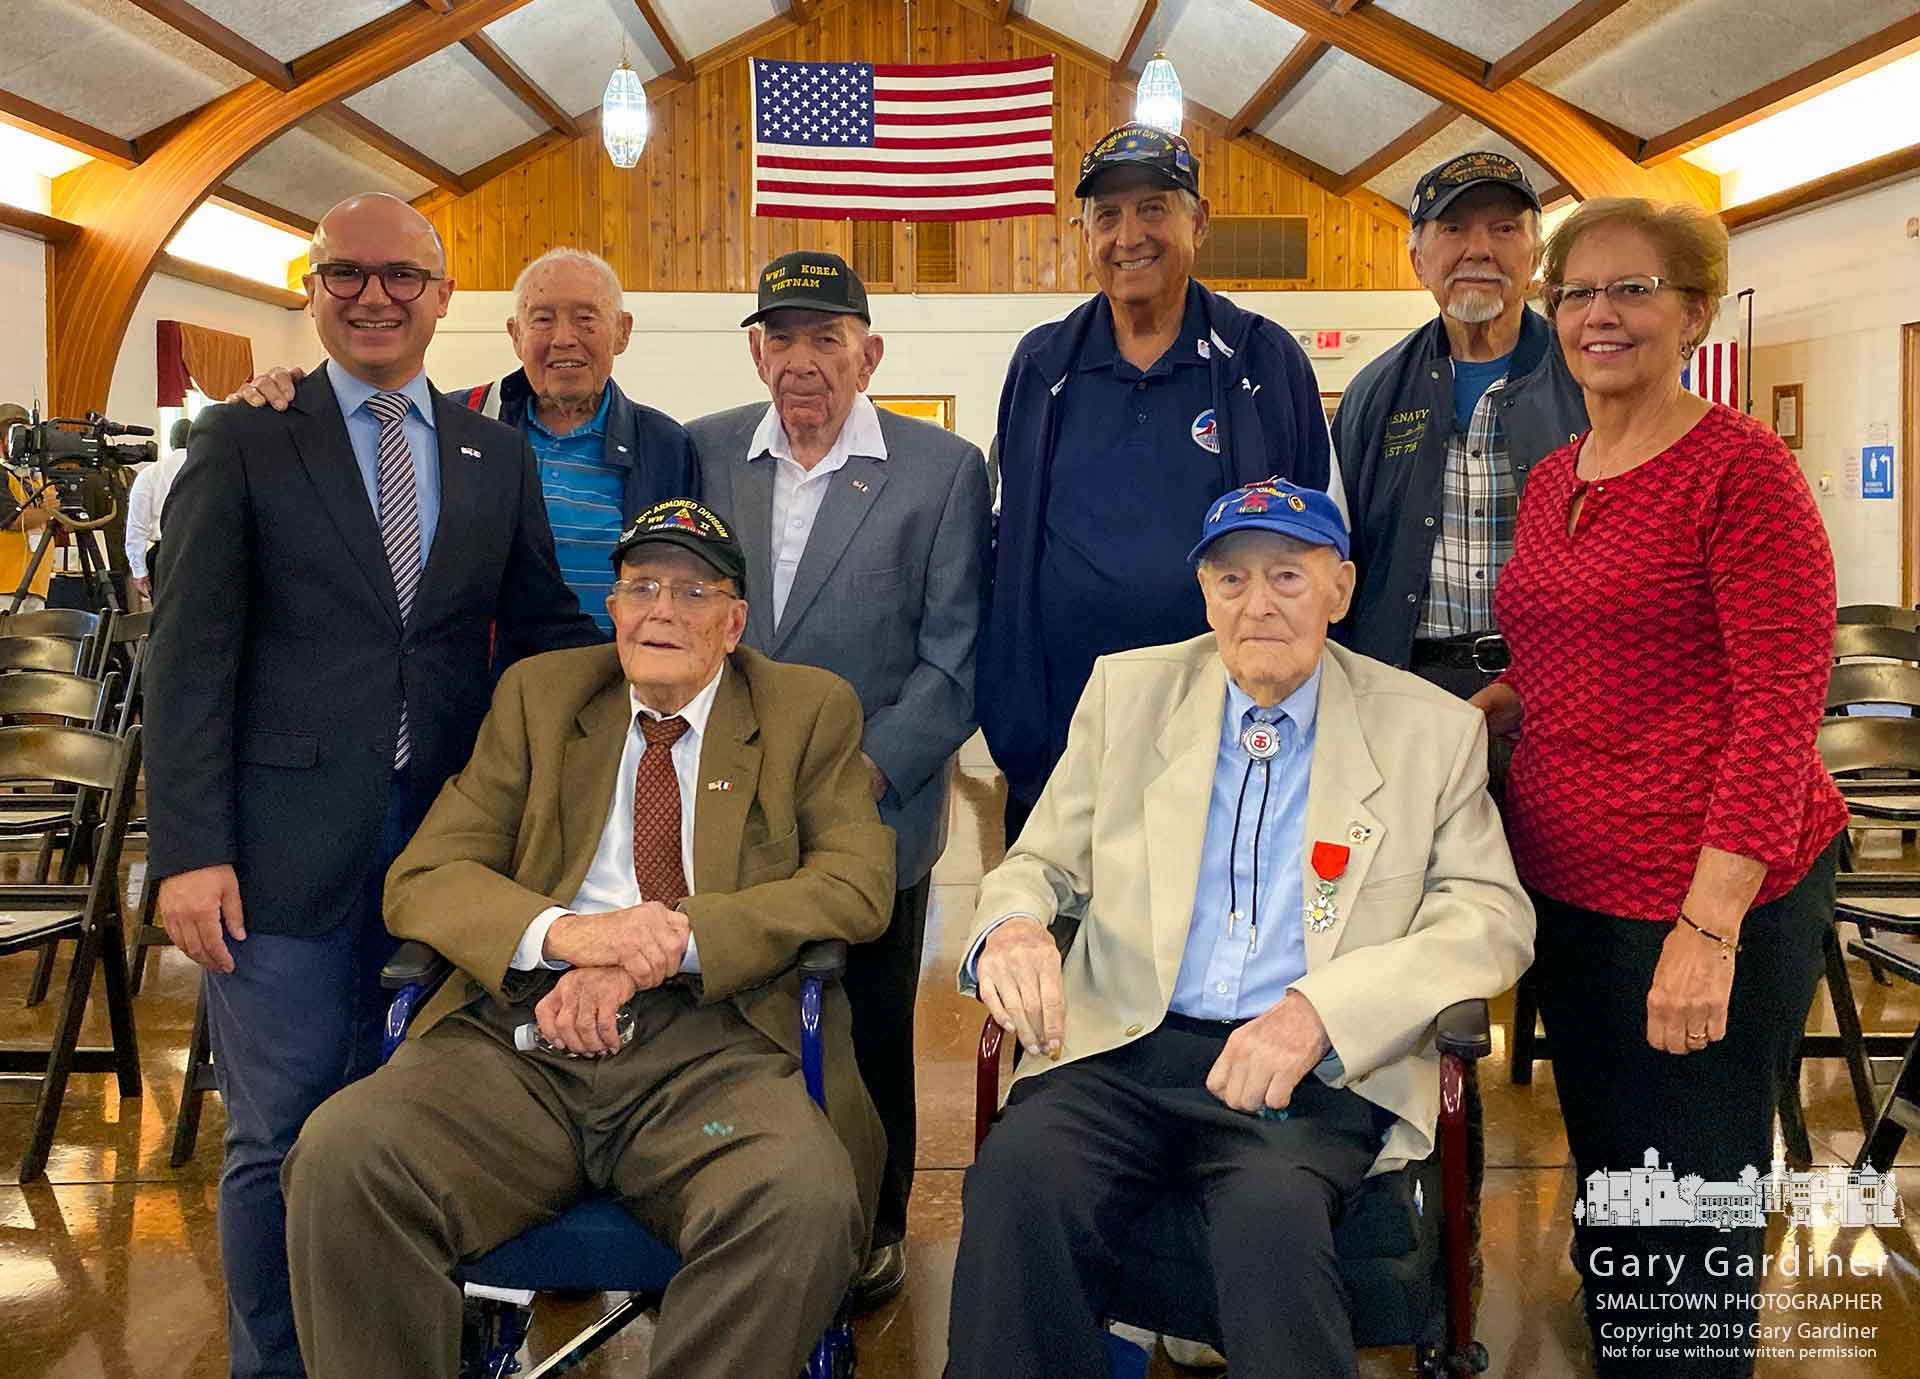 Hon. Guillaume Lacroix, left, Consul General of France to the Midwest, stands with World War II veterans after presenting the French Legion of Honor to John Jay, seated at right next to his daughter, in ceremonies at the American Legion Hall in Westerville. My Final Photo for Oct. 8, 2019.